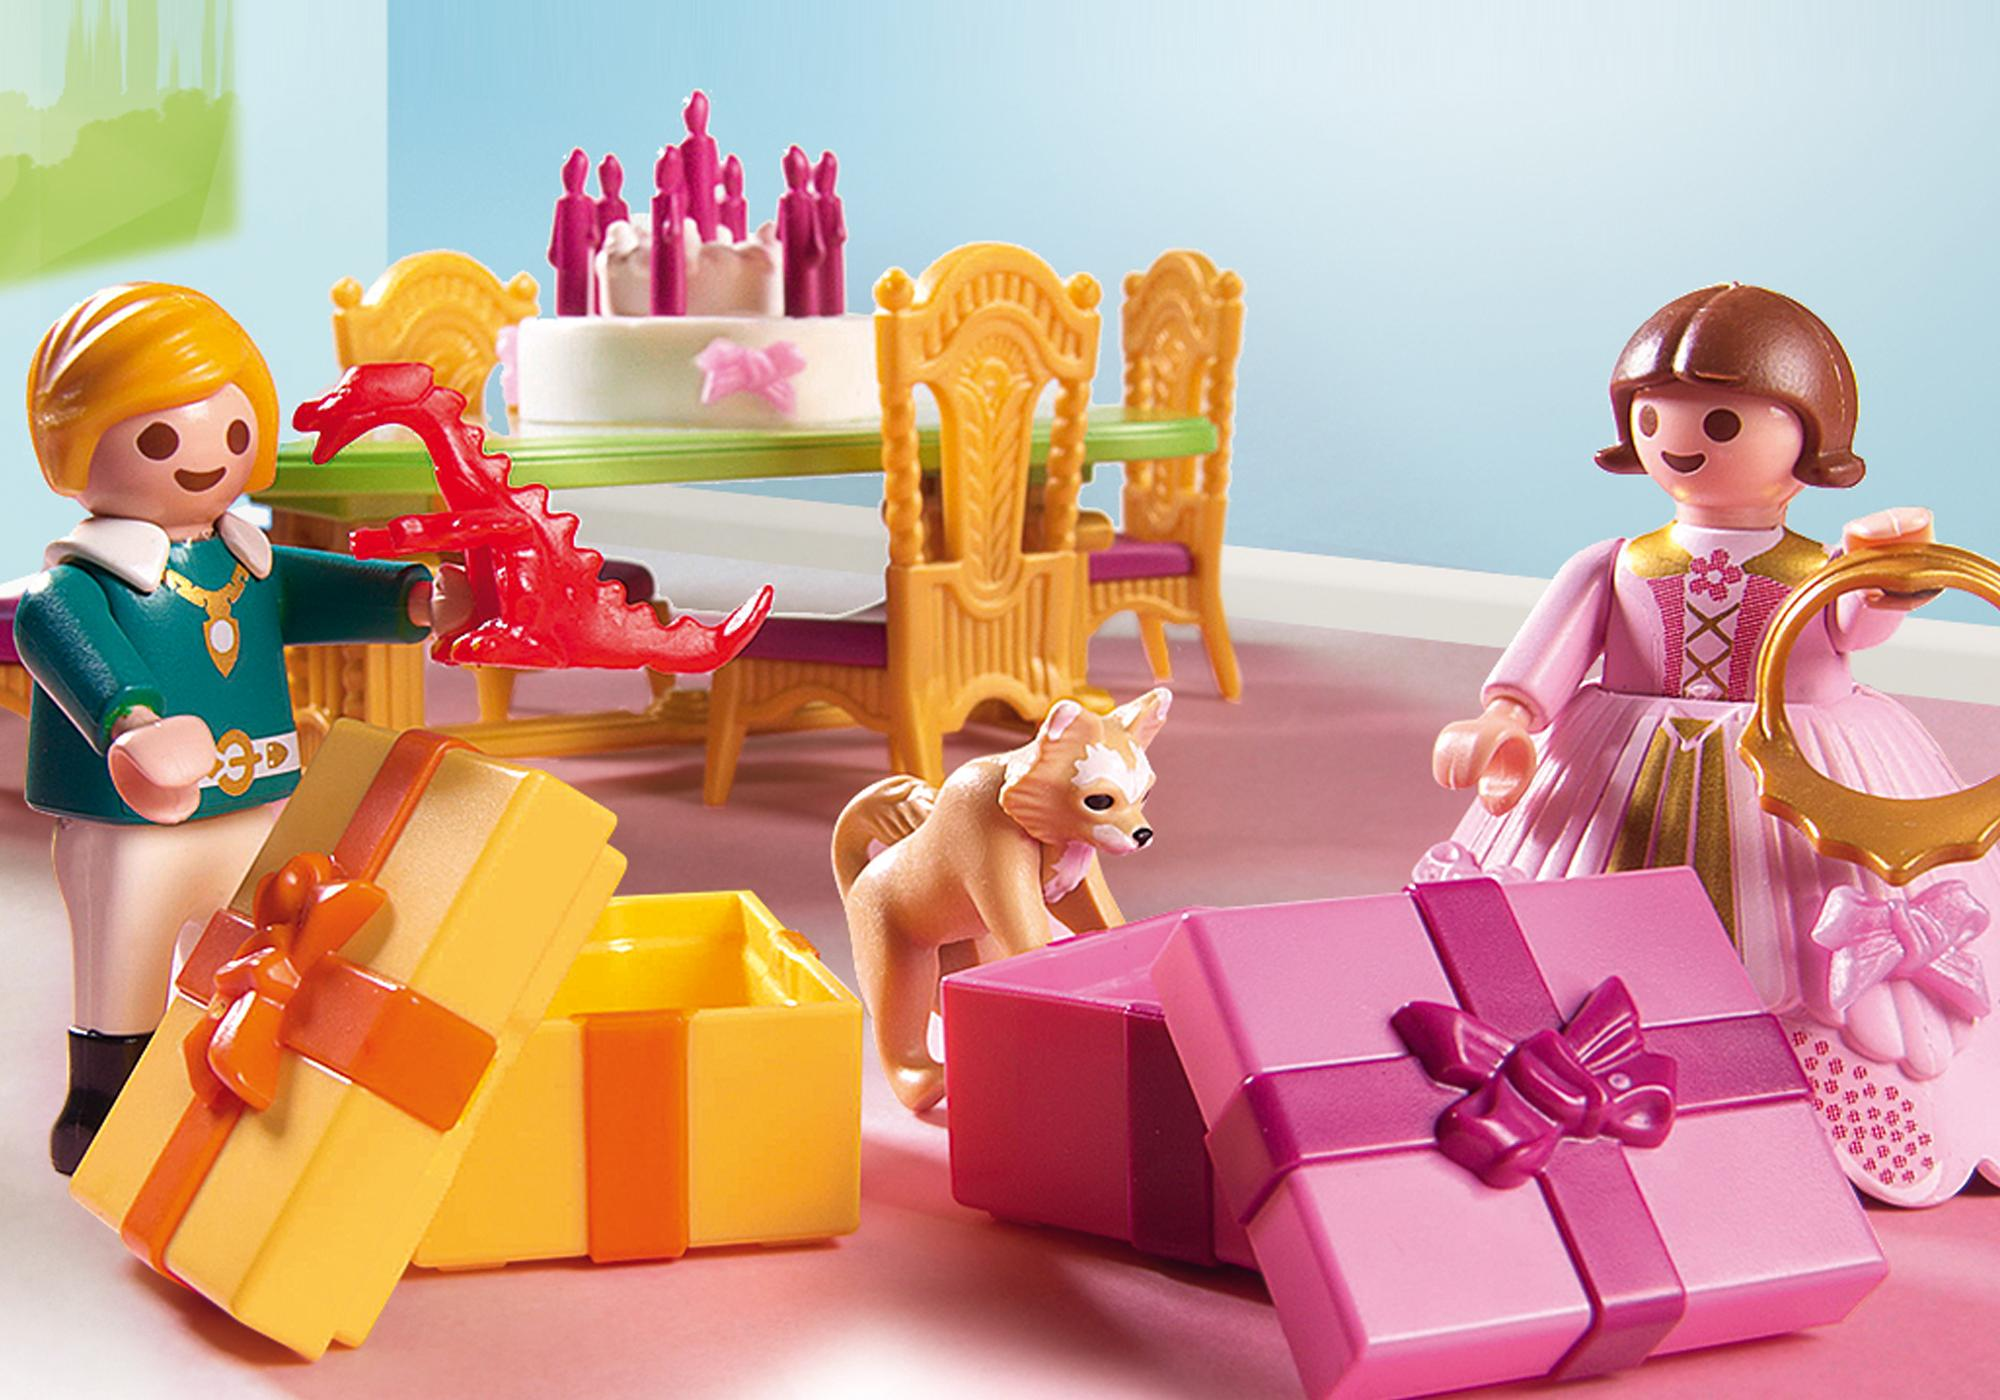 http://media.playmobil.com/i/playmobil/6854_product_extra2